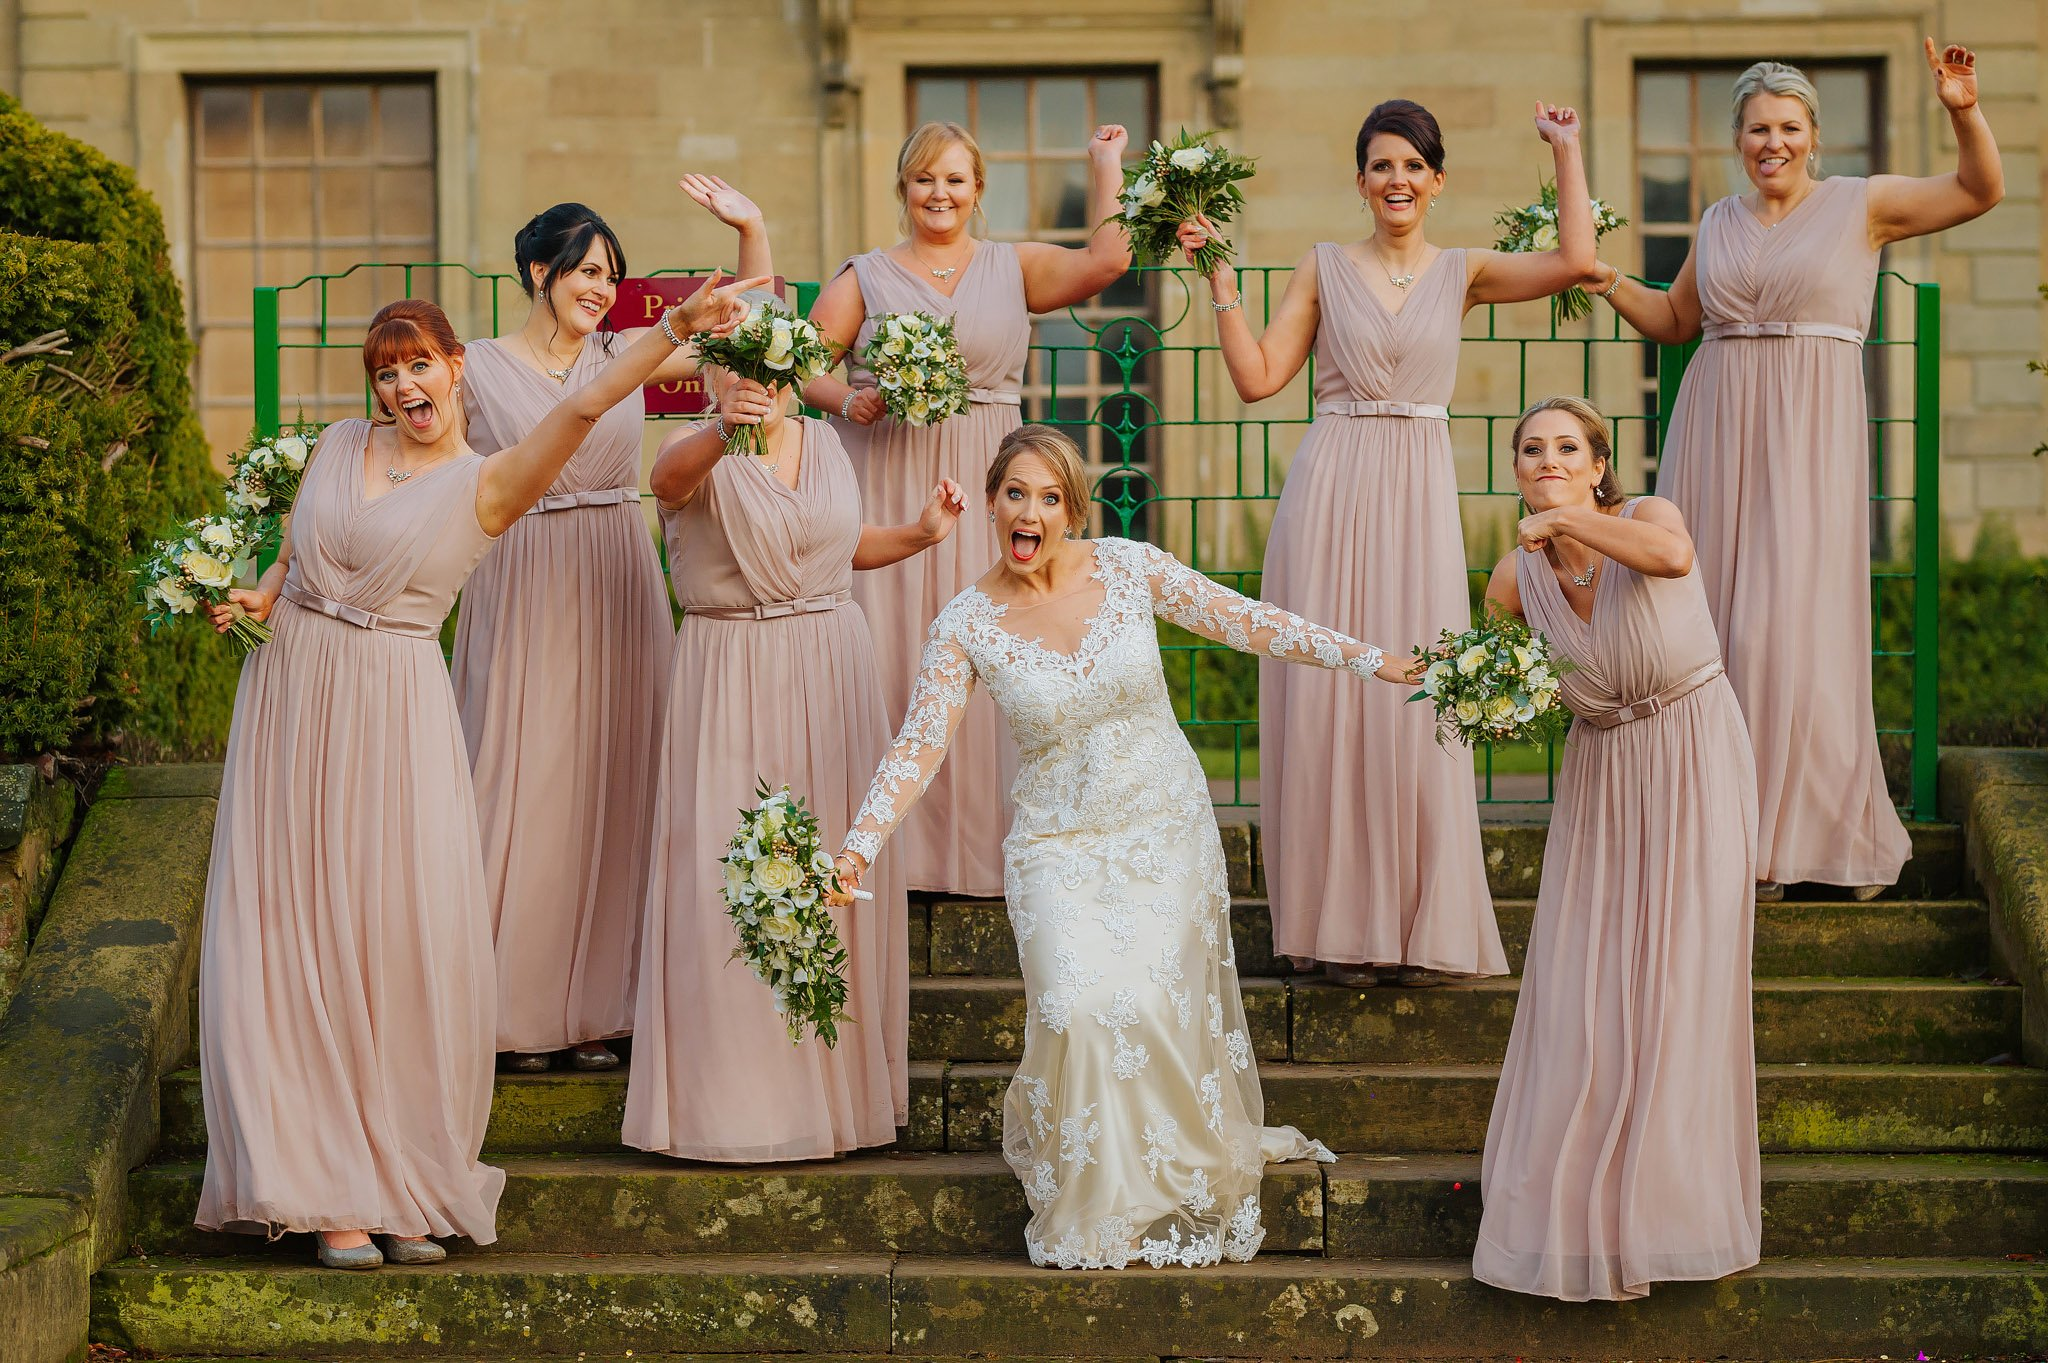 Coombe Abbey wedding in Coventry, Warwickshire - Sam + Matt 38